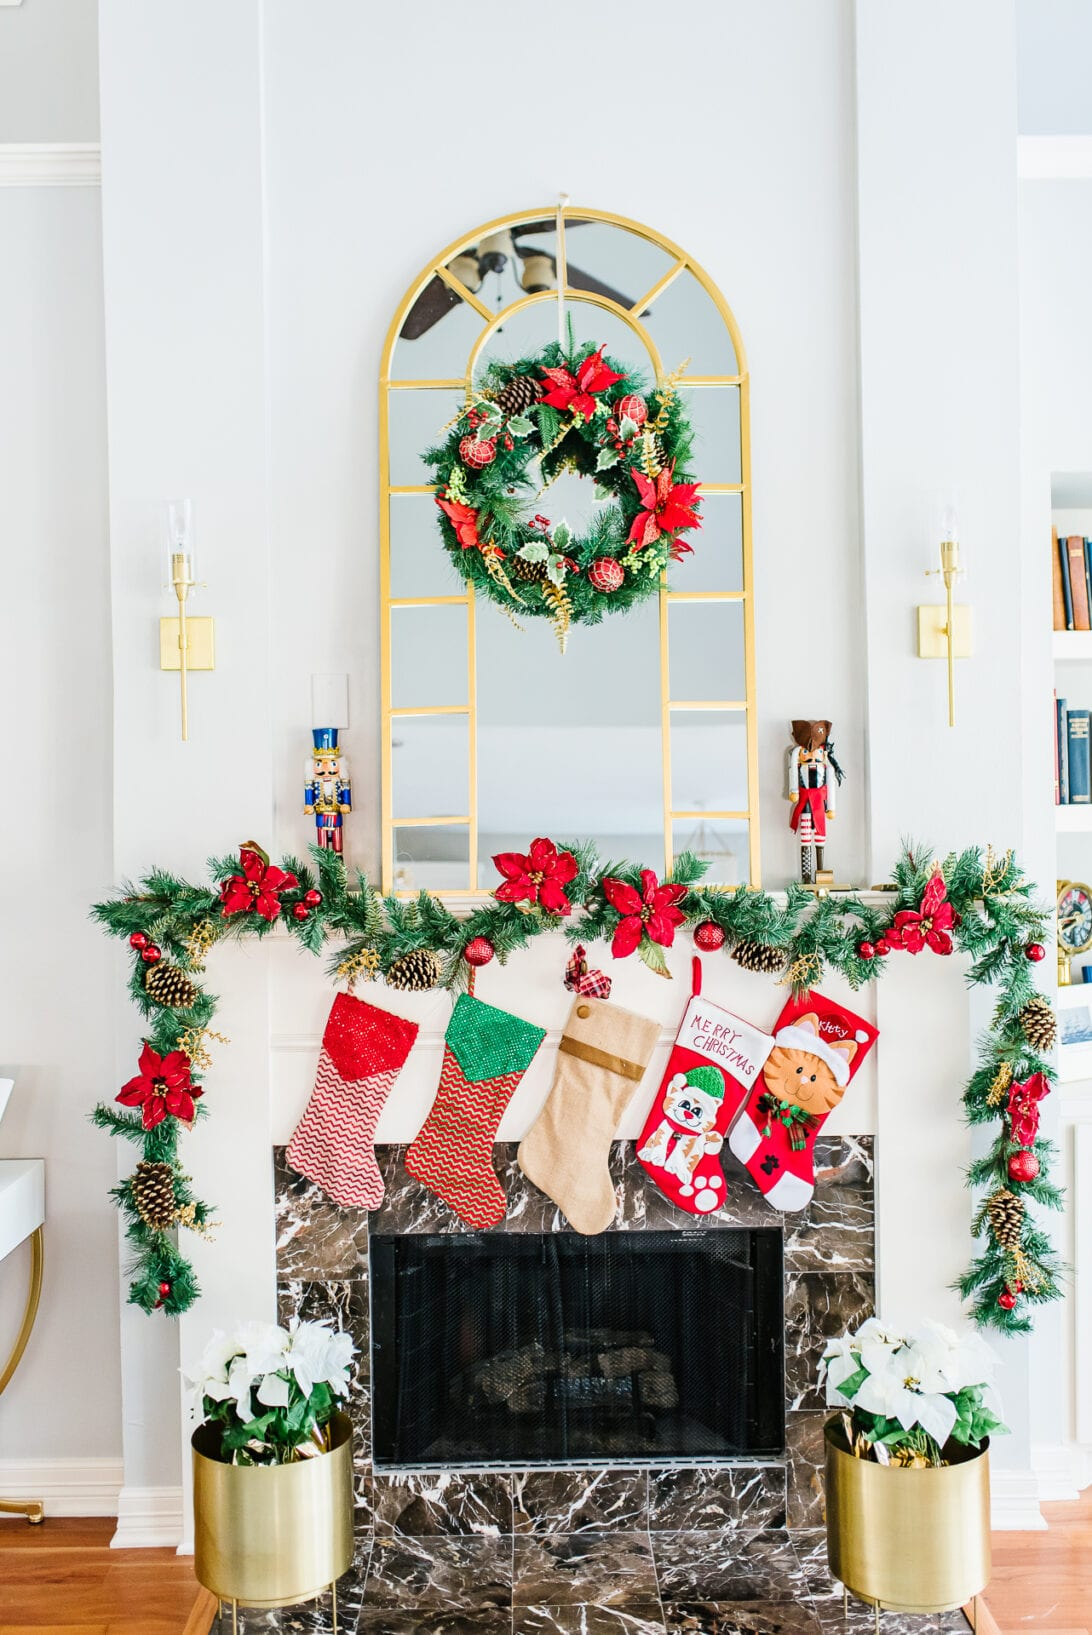 living room fireplace, Christmas fireplace decoration, Nutcrackers, poinsettias